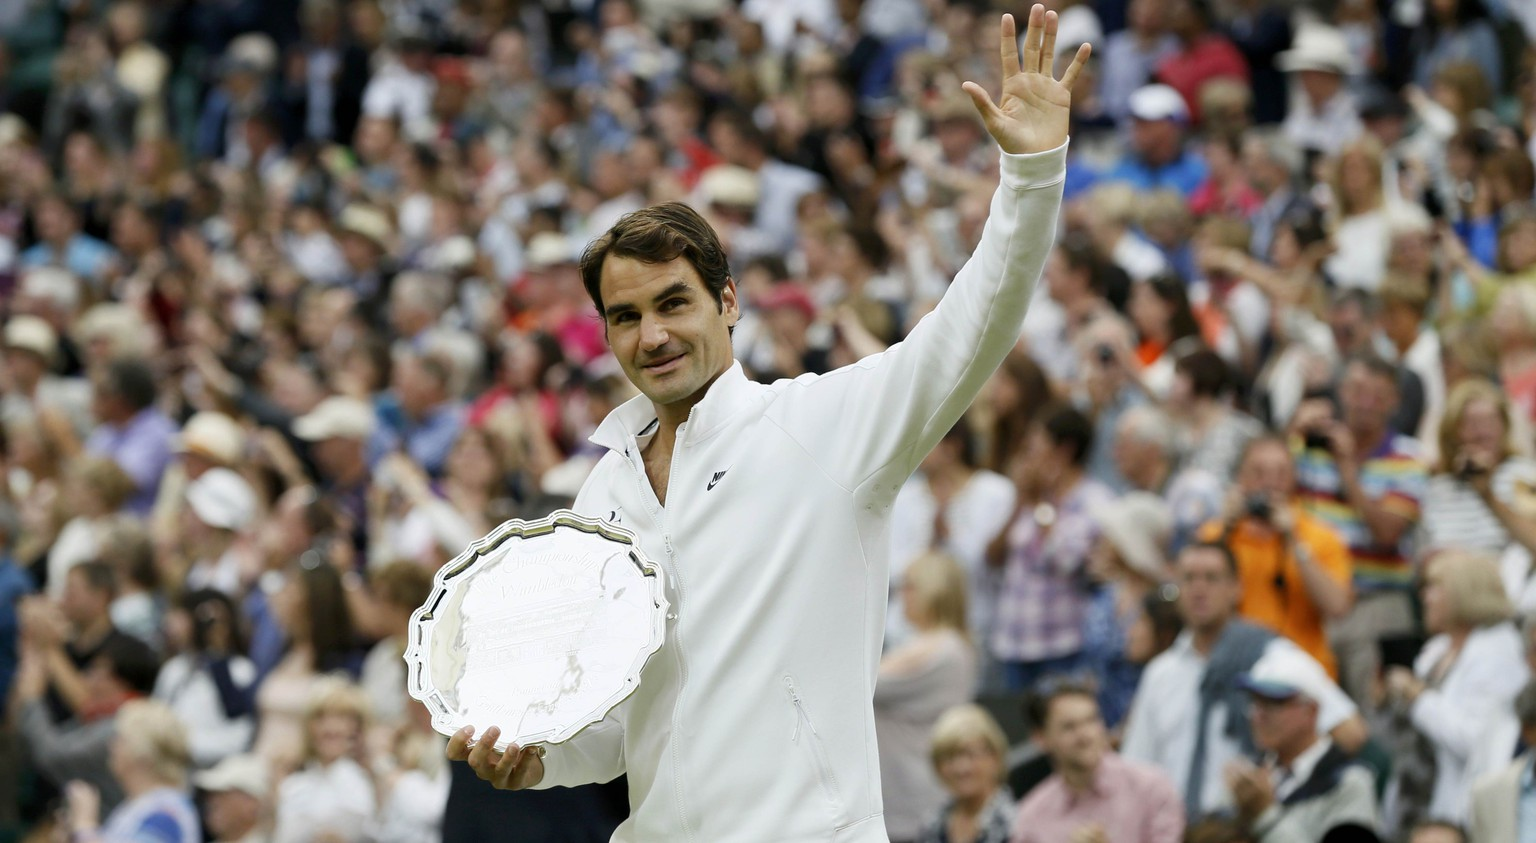 Roger Federer of Switzerland waves with the runner up trophy after losing his Men's Singles Final match against Novak Djokovic of Serbia at the Wimbledon Tennis Championships in London, July 12, 2015.                                                        REUTERS/Stefan Wermuth